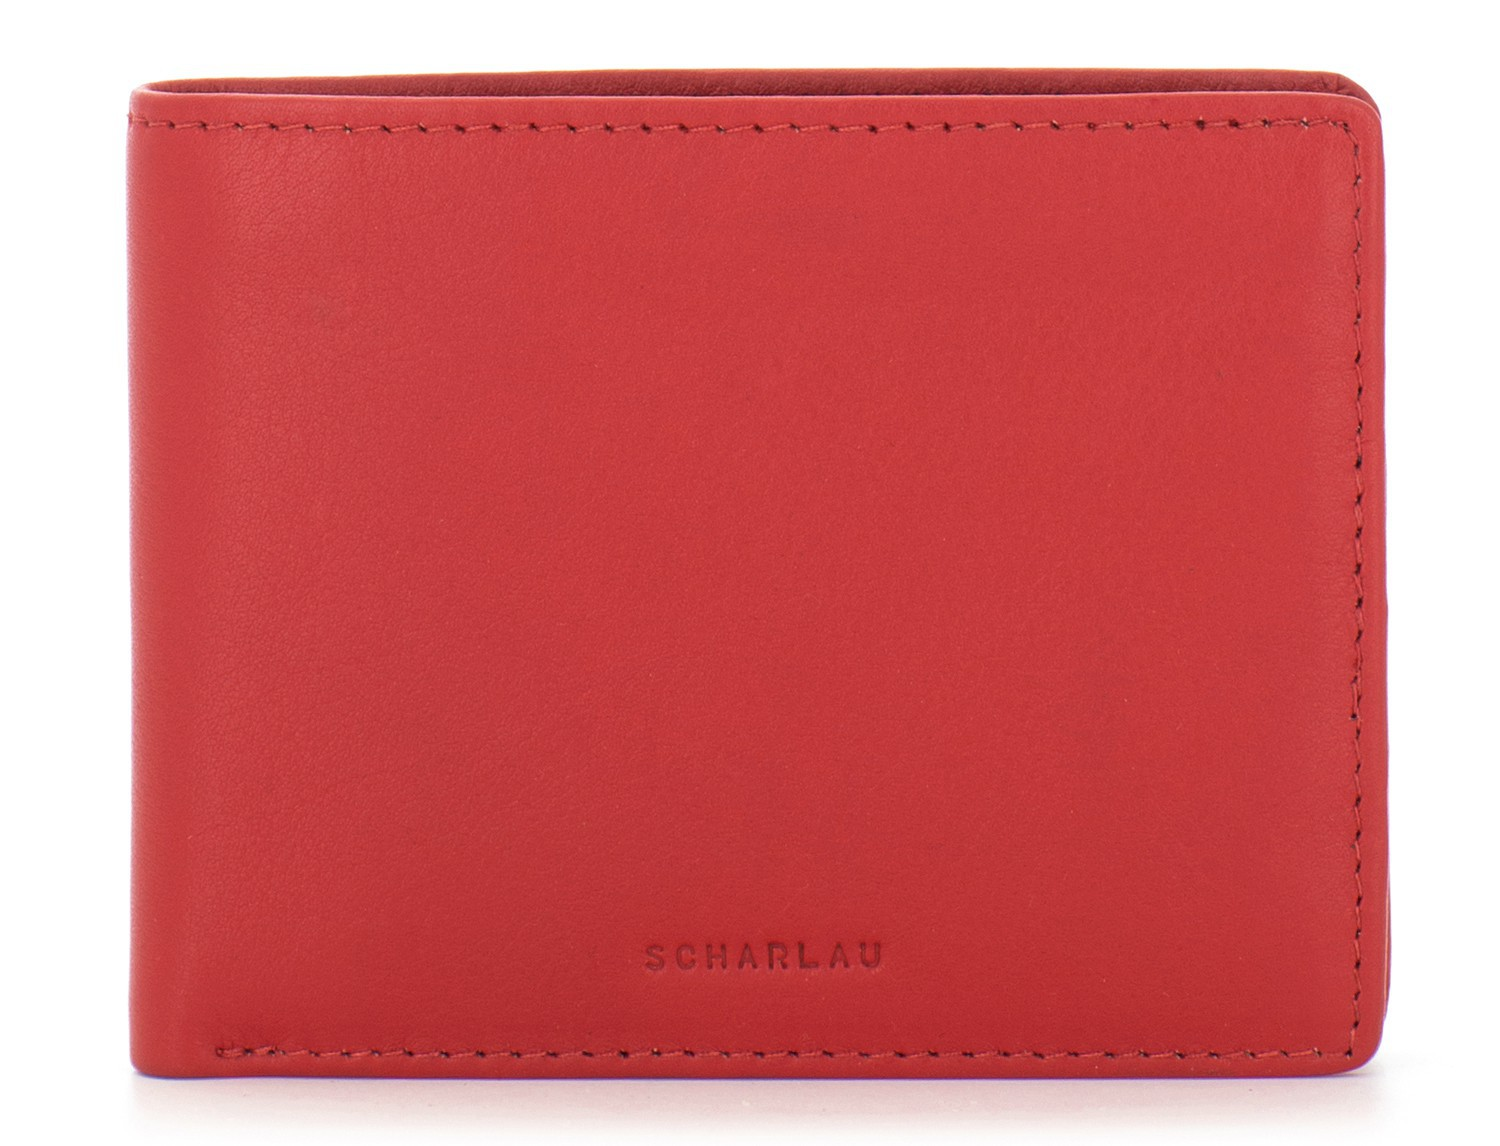 mini leather wallet for men red front